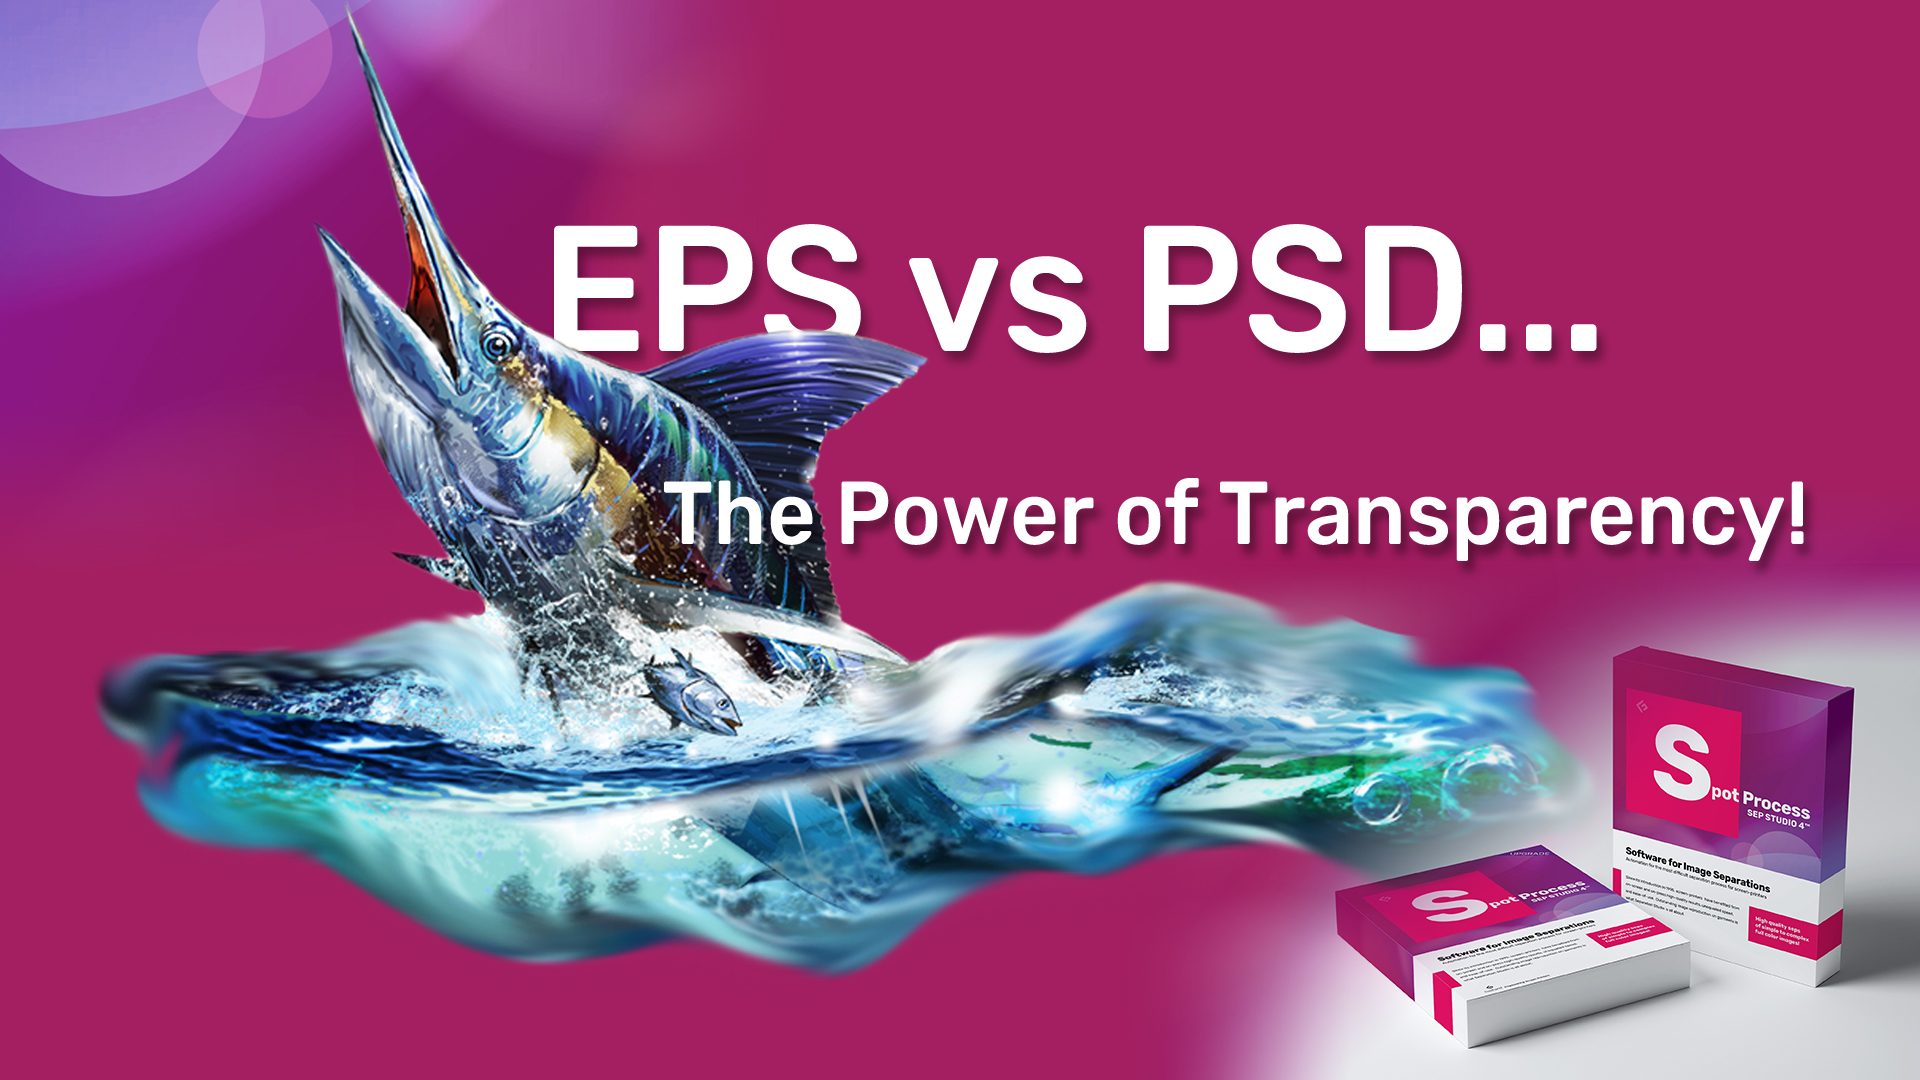 spss4-eps-vs-psd-flashy-youtube